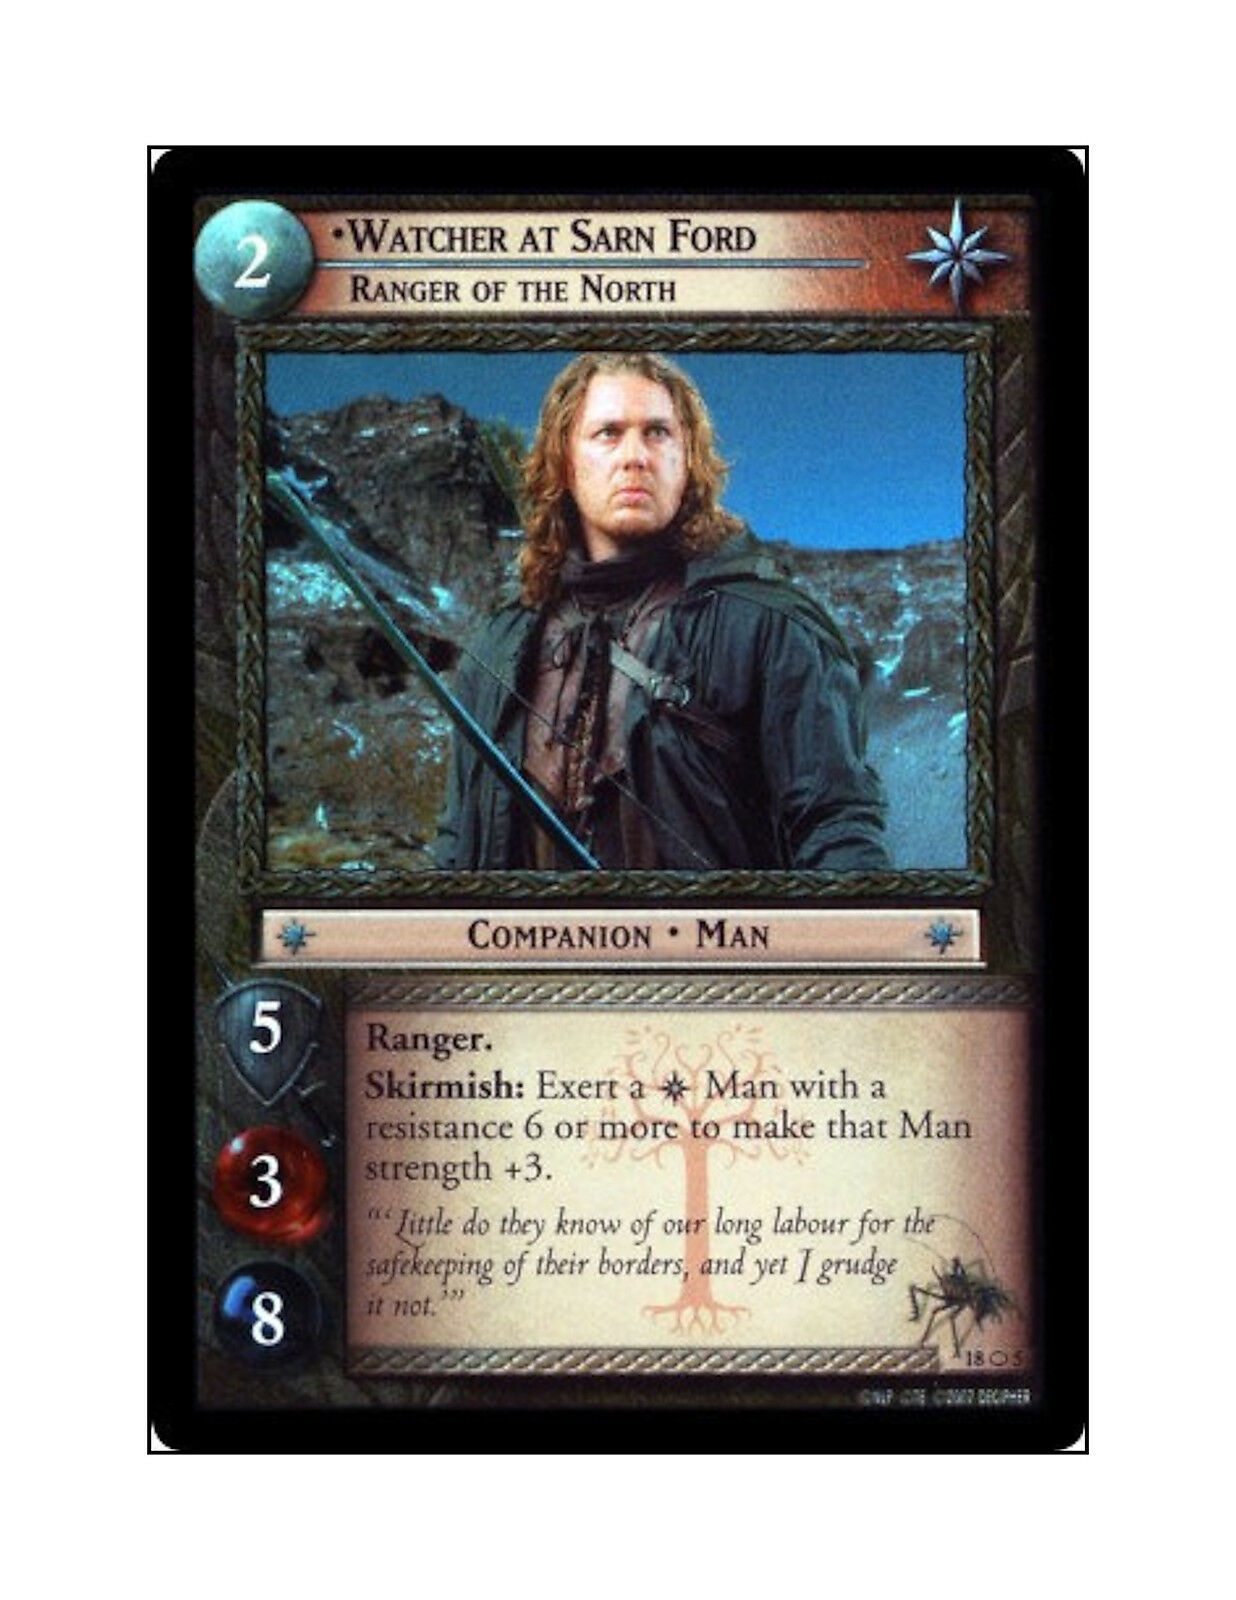 LotR TCG T&D MW FOIL 18O5 Watcher at Sarnford, Ranger of the North - MINT